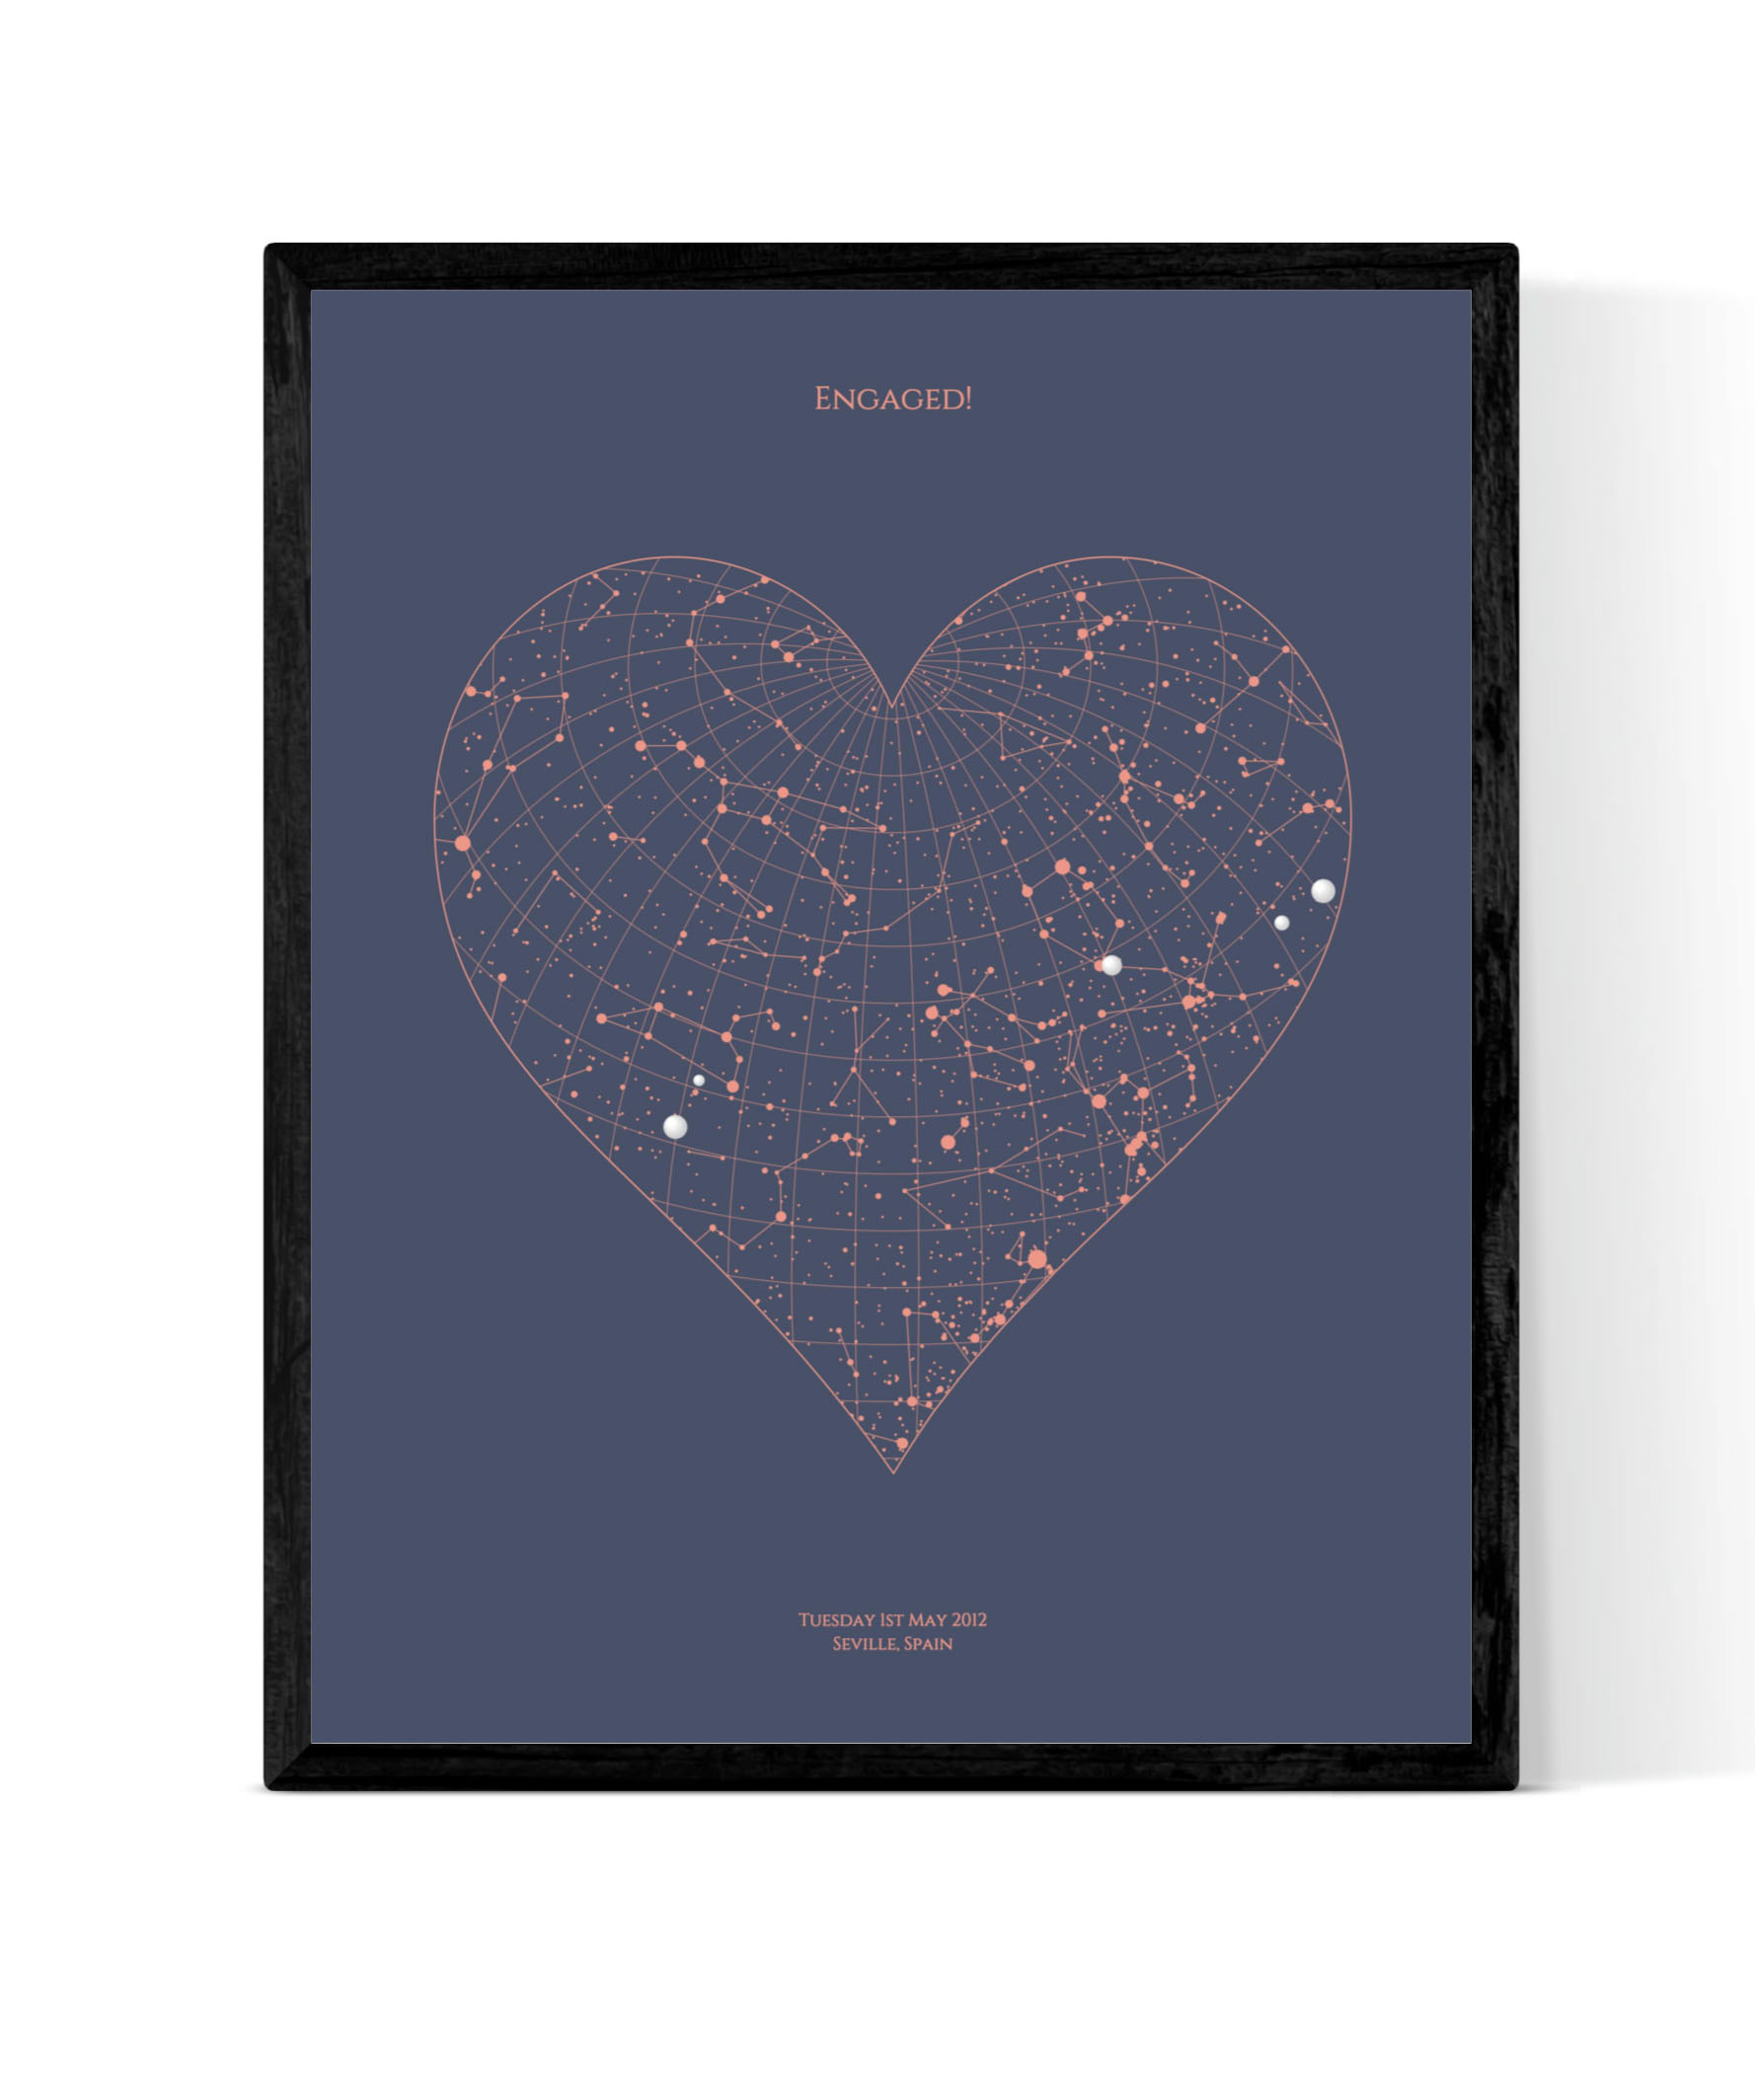 Heart Star Map - Perfect for celebrating big moments in fabulous places, this print allows you to capture the constellations in the sky at your chosen moment in time, at a precise location.